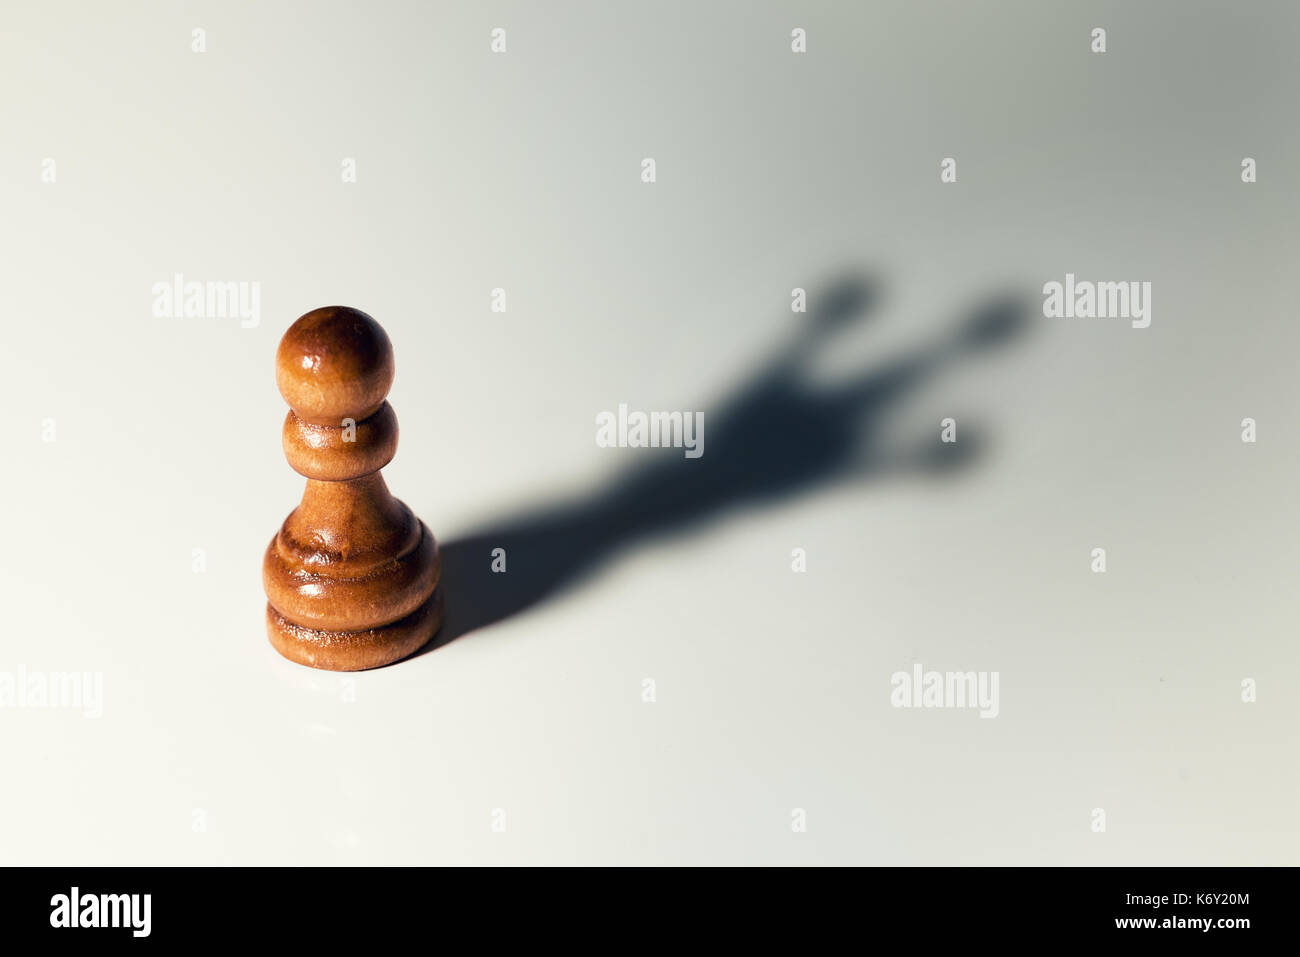 trust yourself concept - chess pawn with king shadow - Stock Image